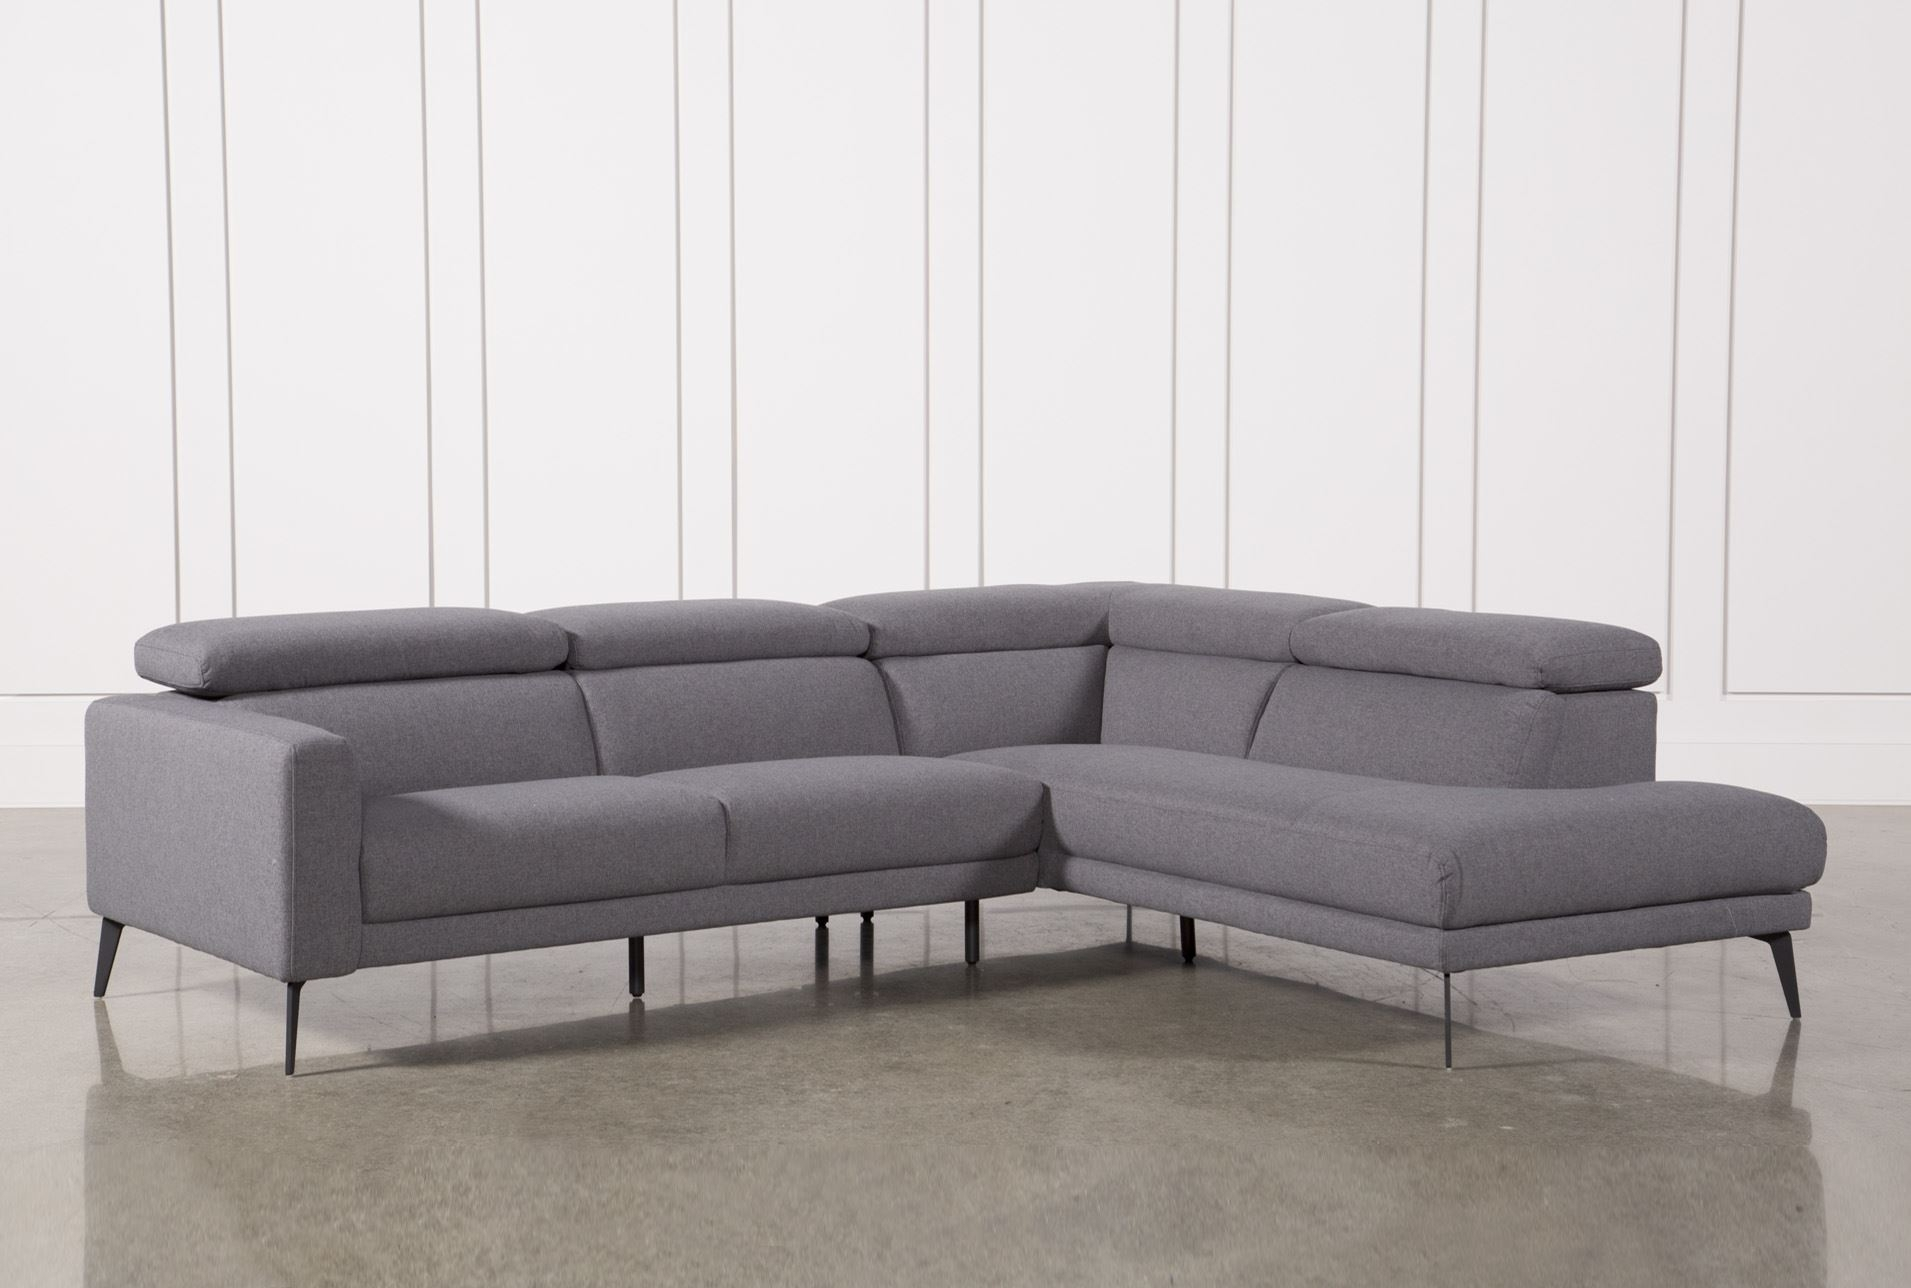 Awesome Collection Of Raf Chaise On Neo Grey 2 Piece Sectional W Raf Pertaining To Norfolk Chocolate 3 Piece Sectionals With Raf Chaise (Image 2 of 25)